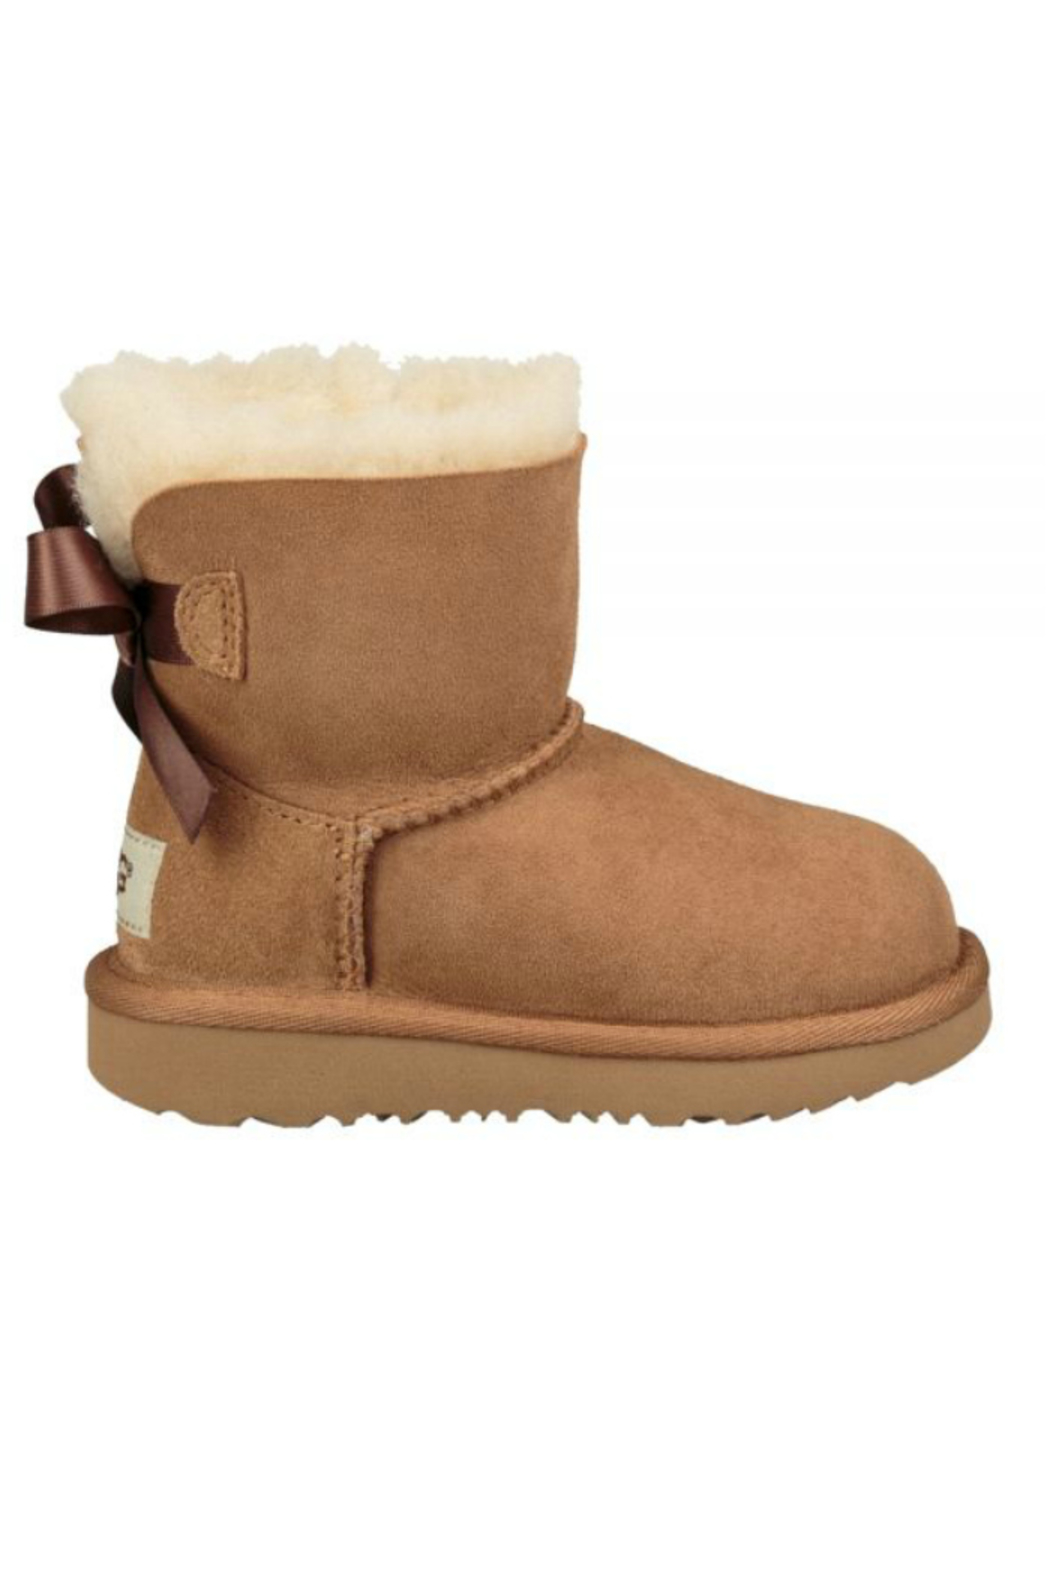 552519f3241 Ugg Toddler Mini Bailey Bow from New Jersey by Suburban Shoes ...